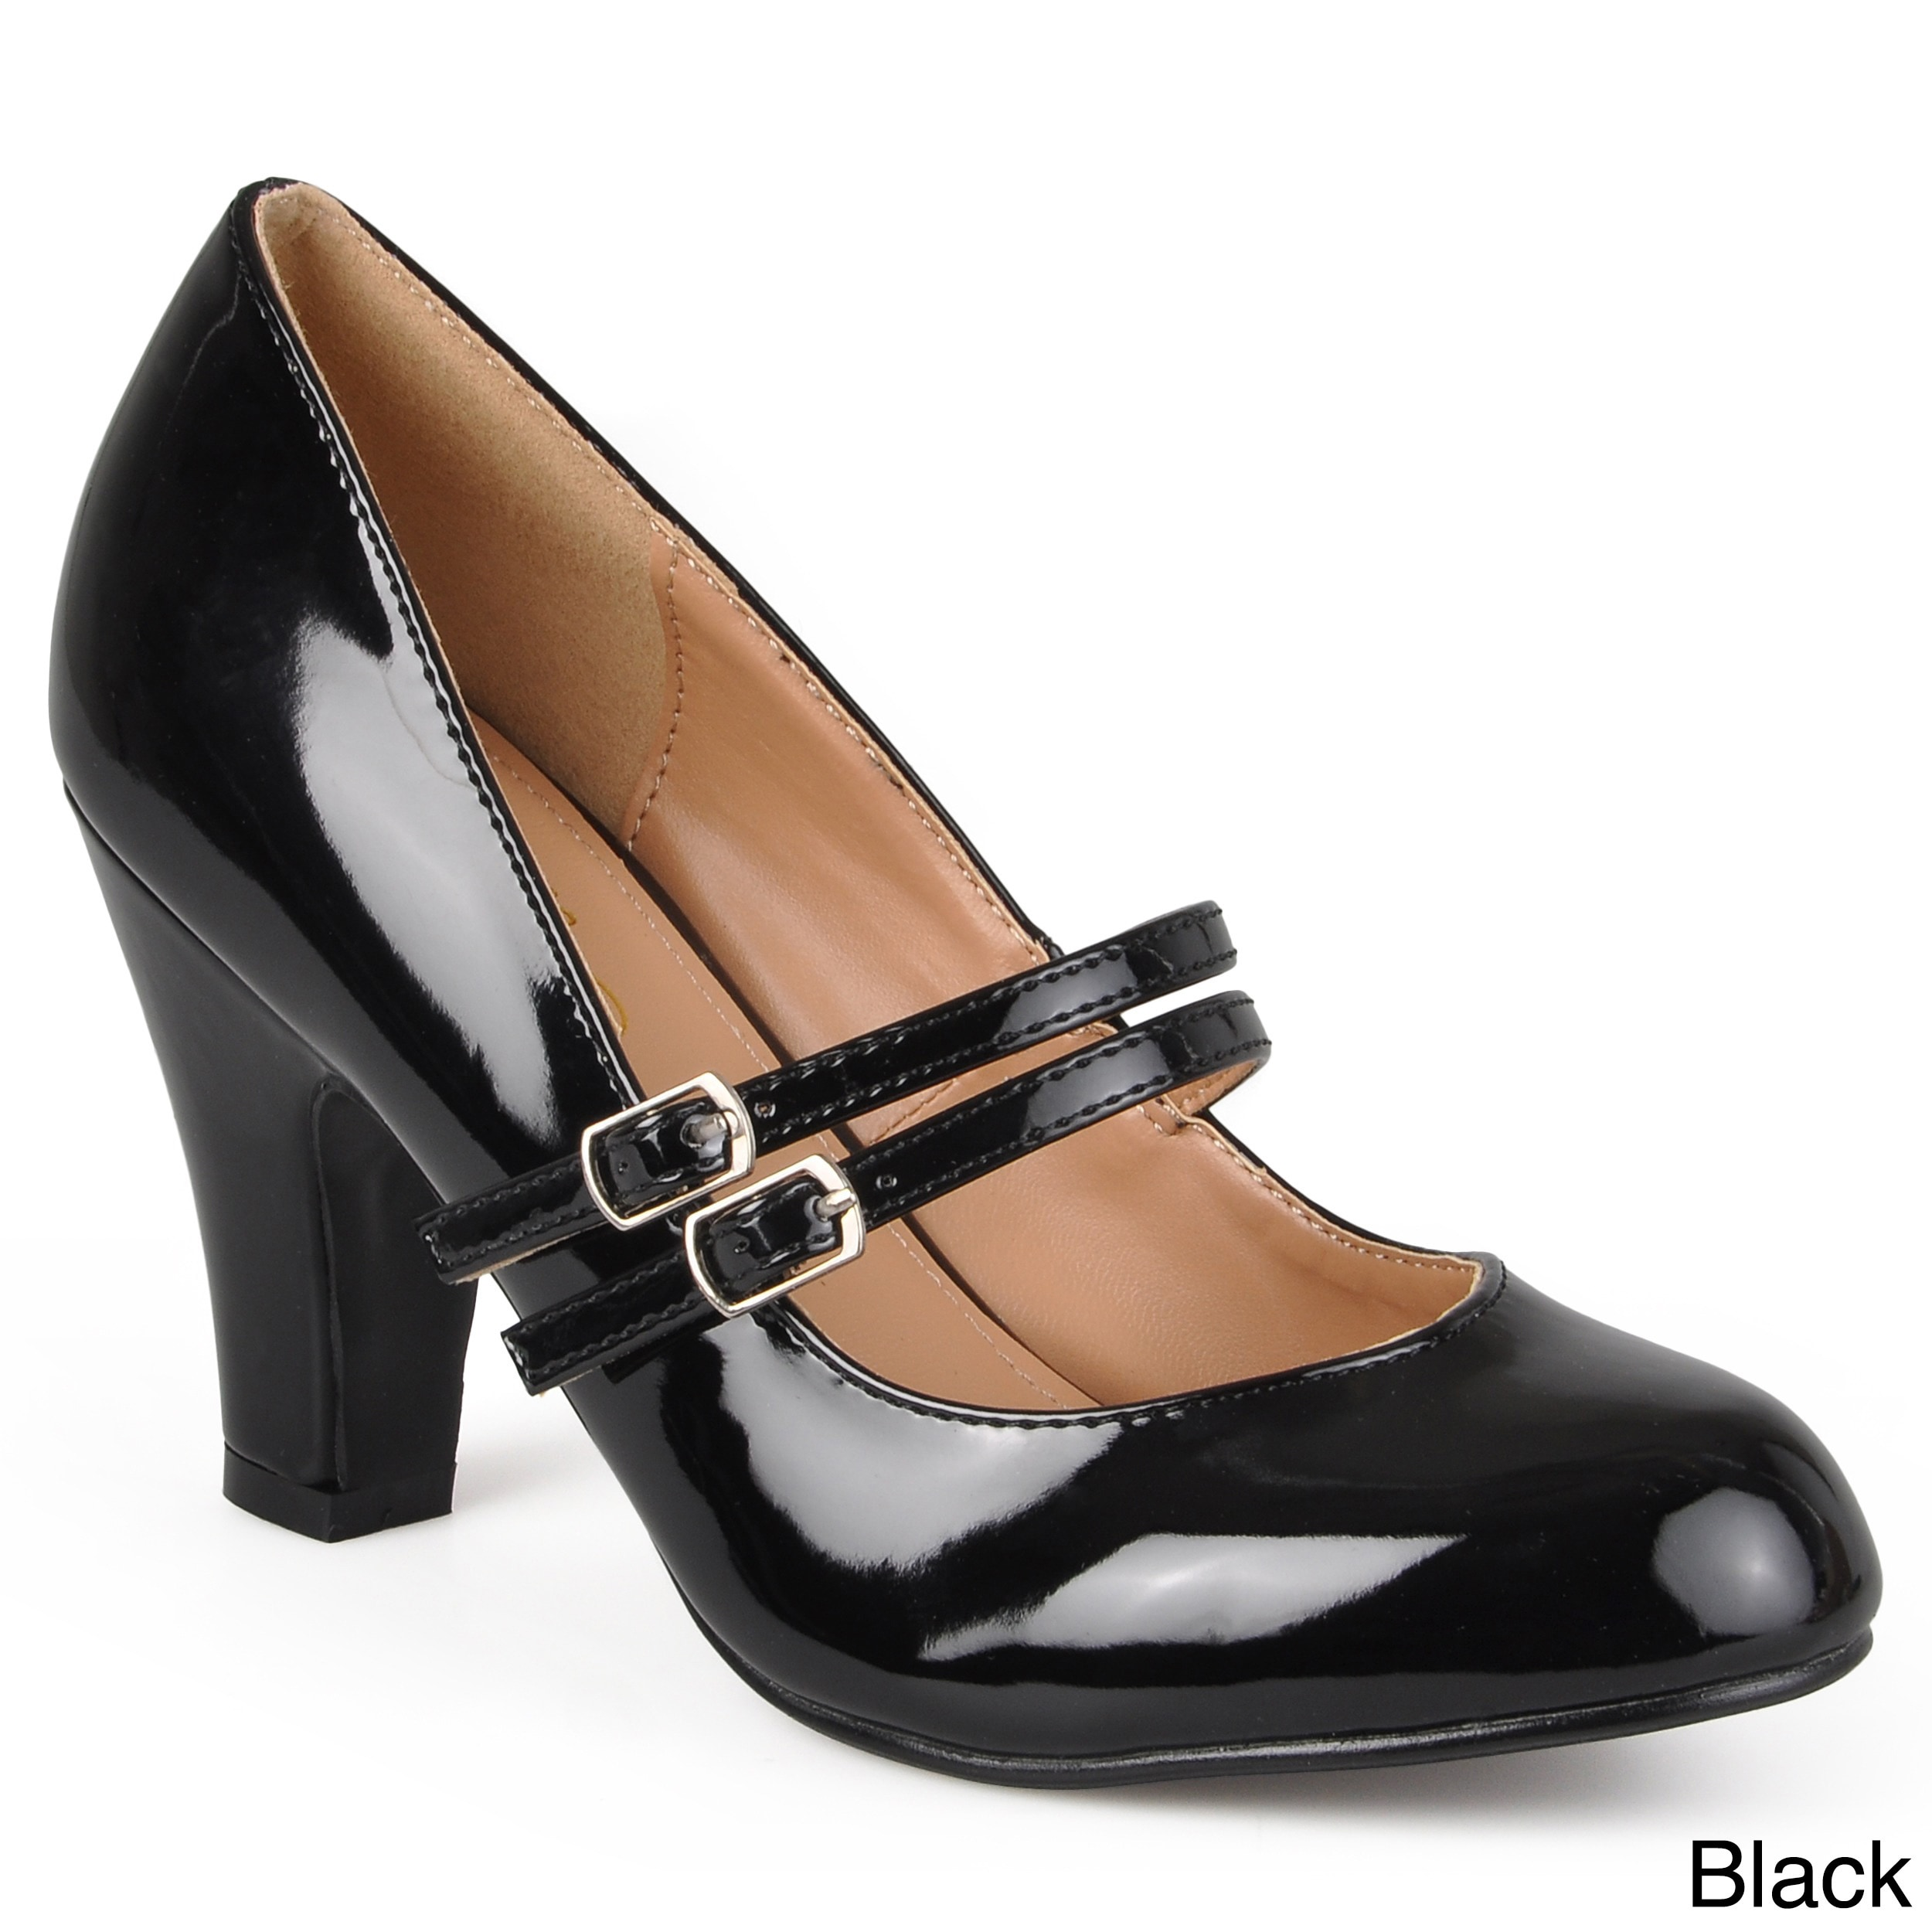 WENDY-09' Patent Mary Jane Pumps